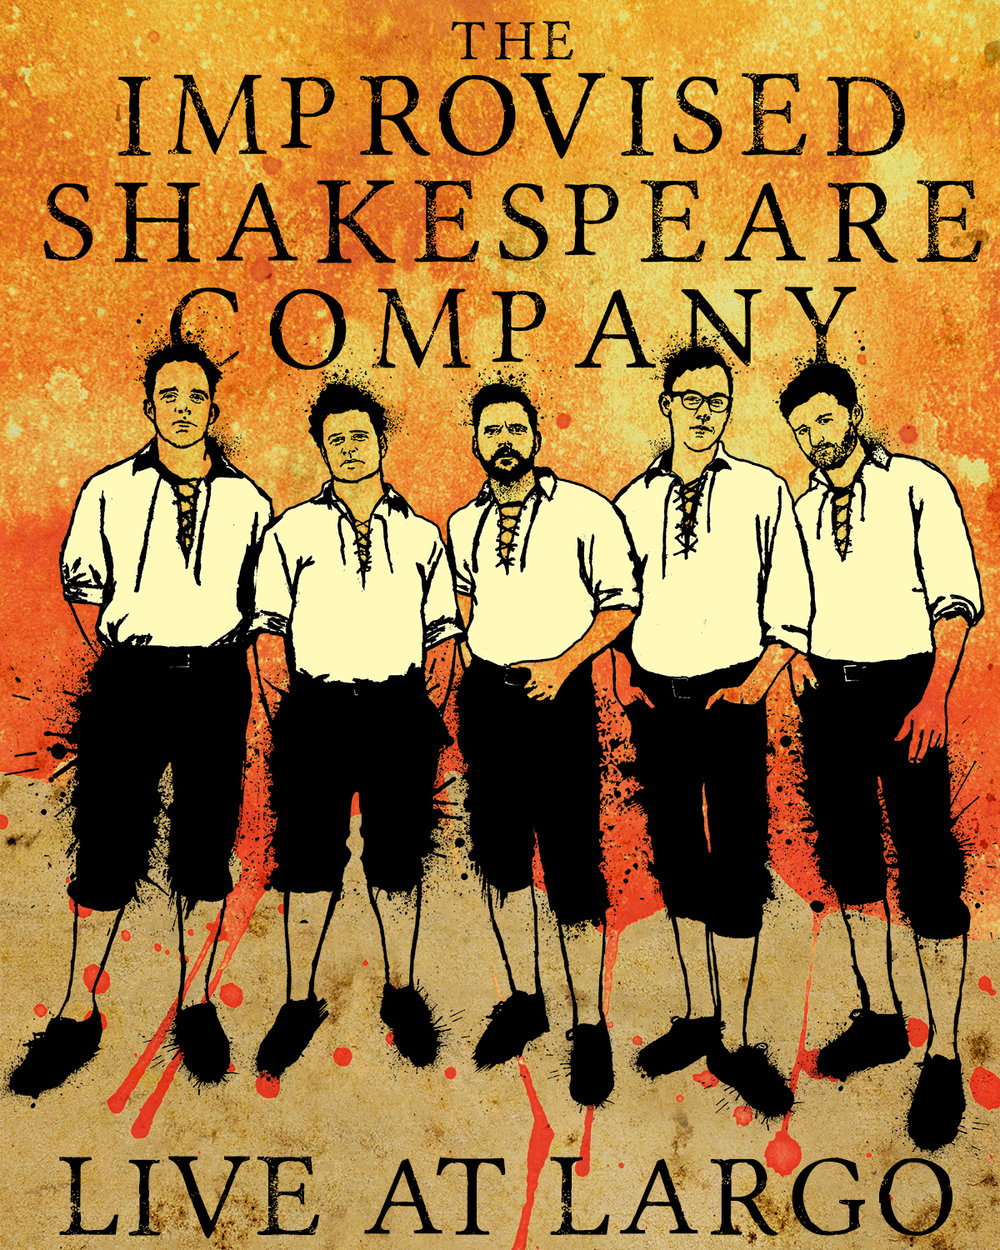 Promotional poster for The Improvised Shakespeare Company.